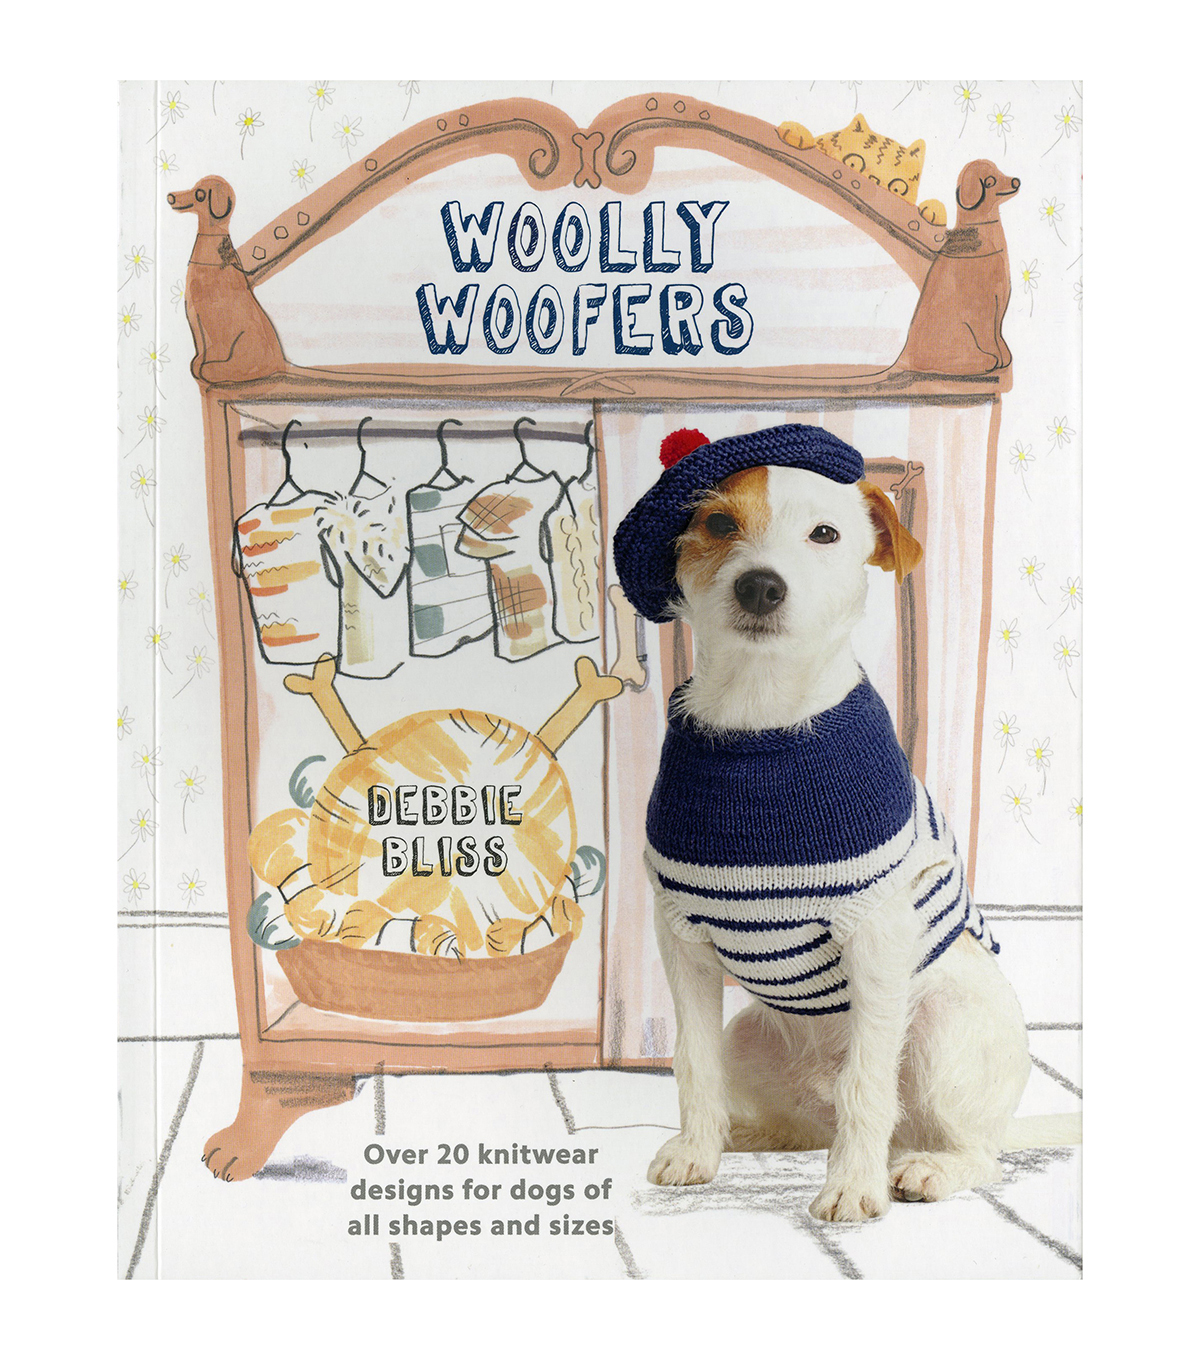 Woolly Woofers Knitwear Designs for Dogs